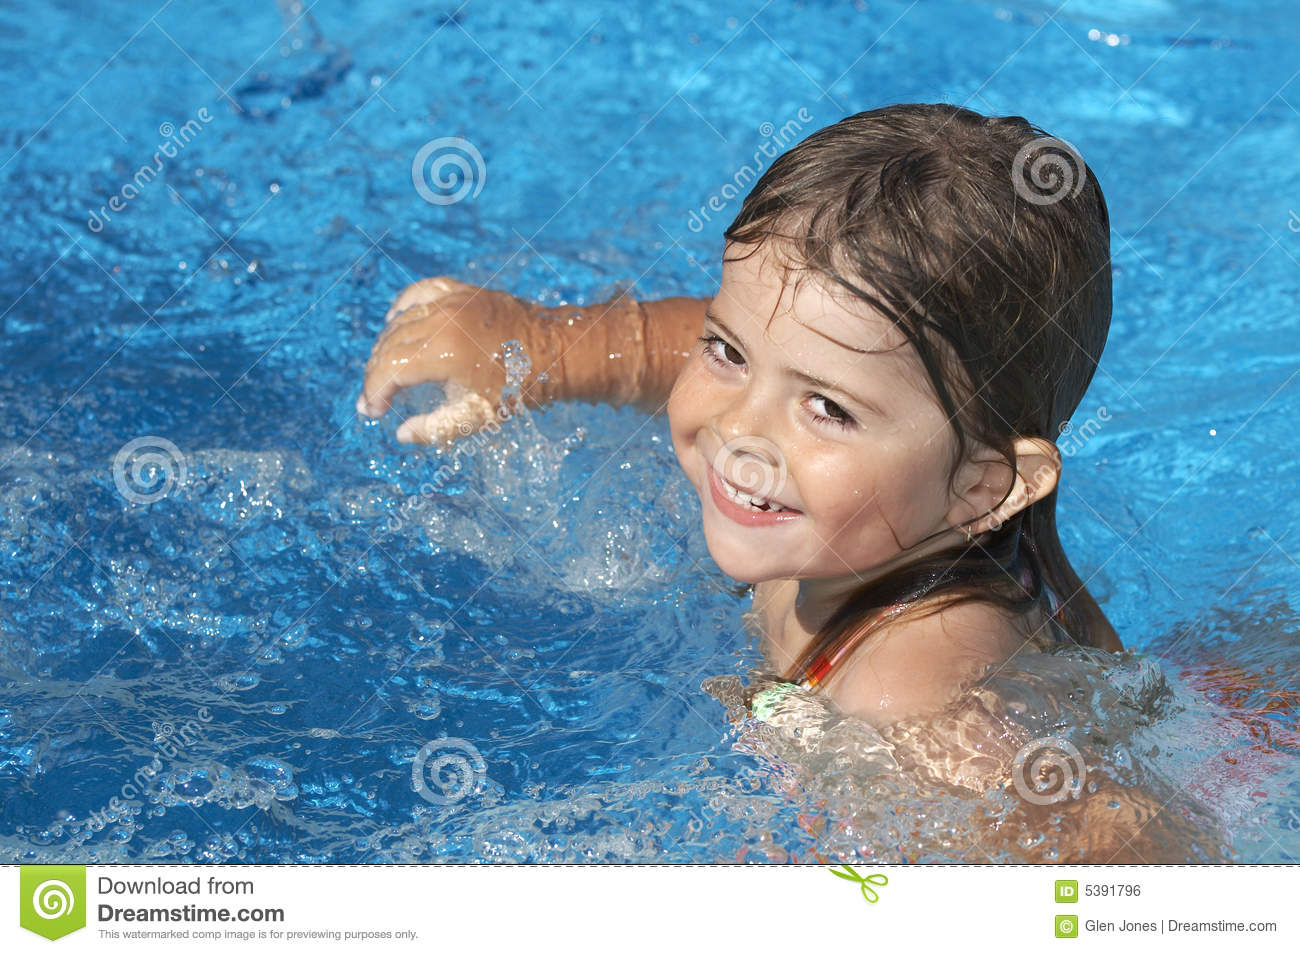 Cute little girl in pool water during the summer